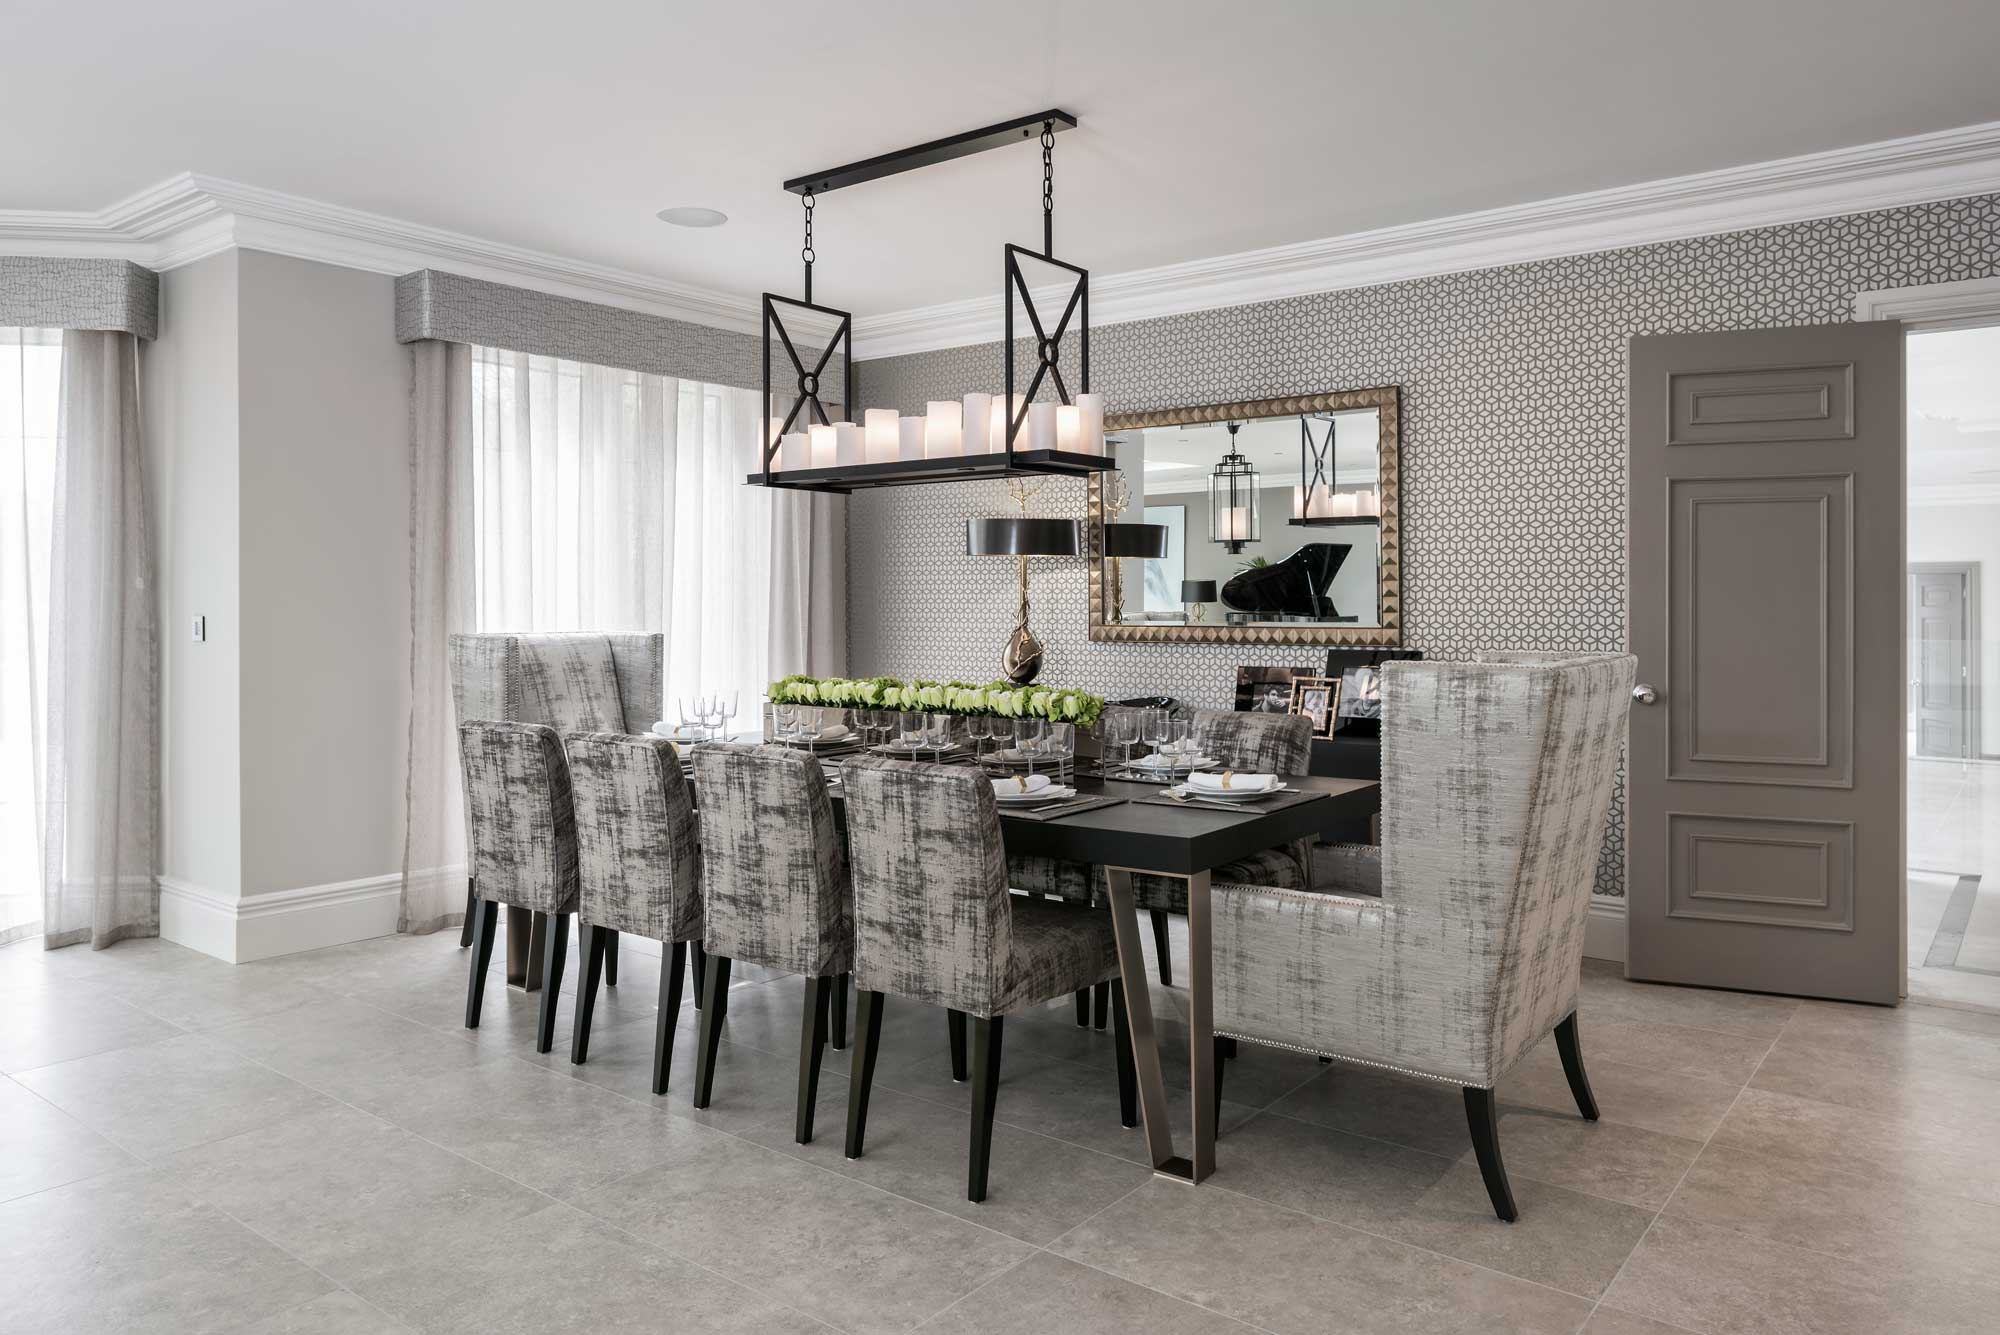 Dining Area Ad Interiors Dining Area Interior Design Ad Interiors